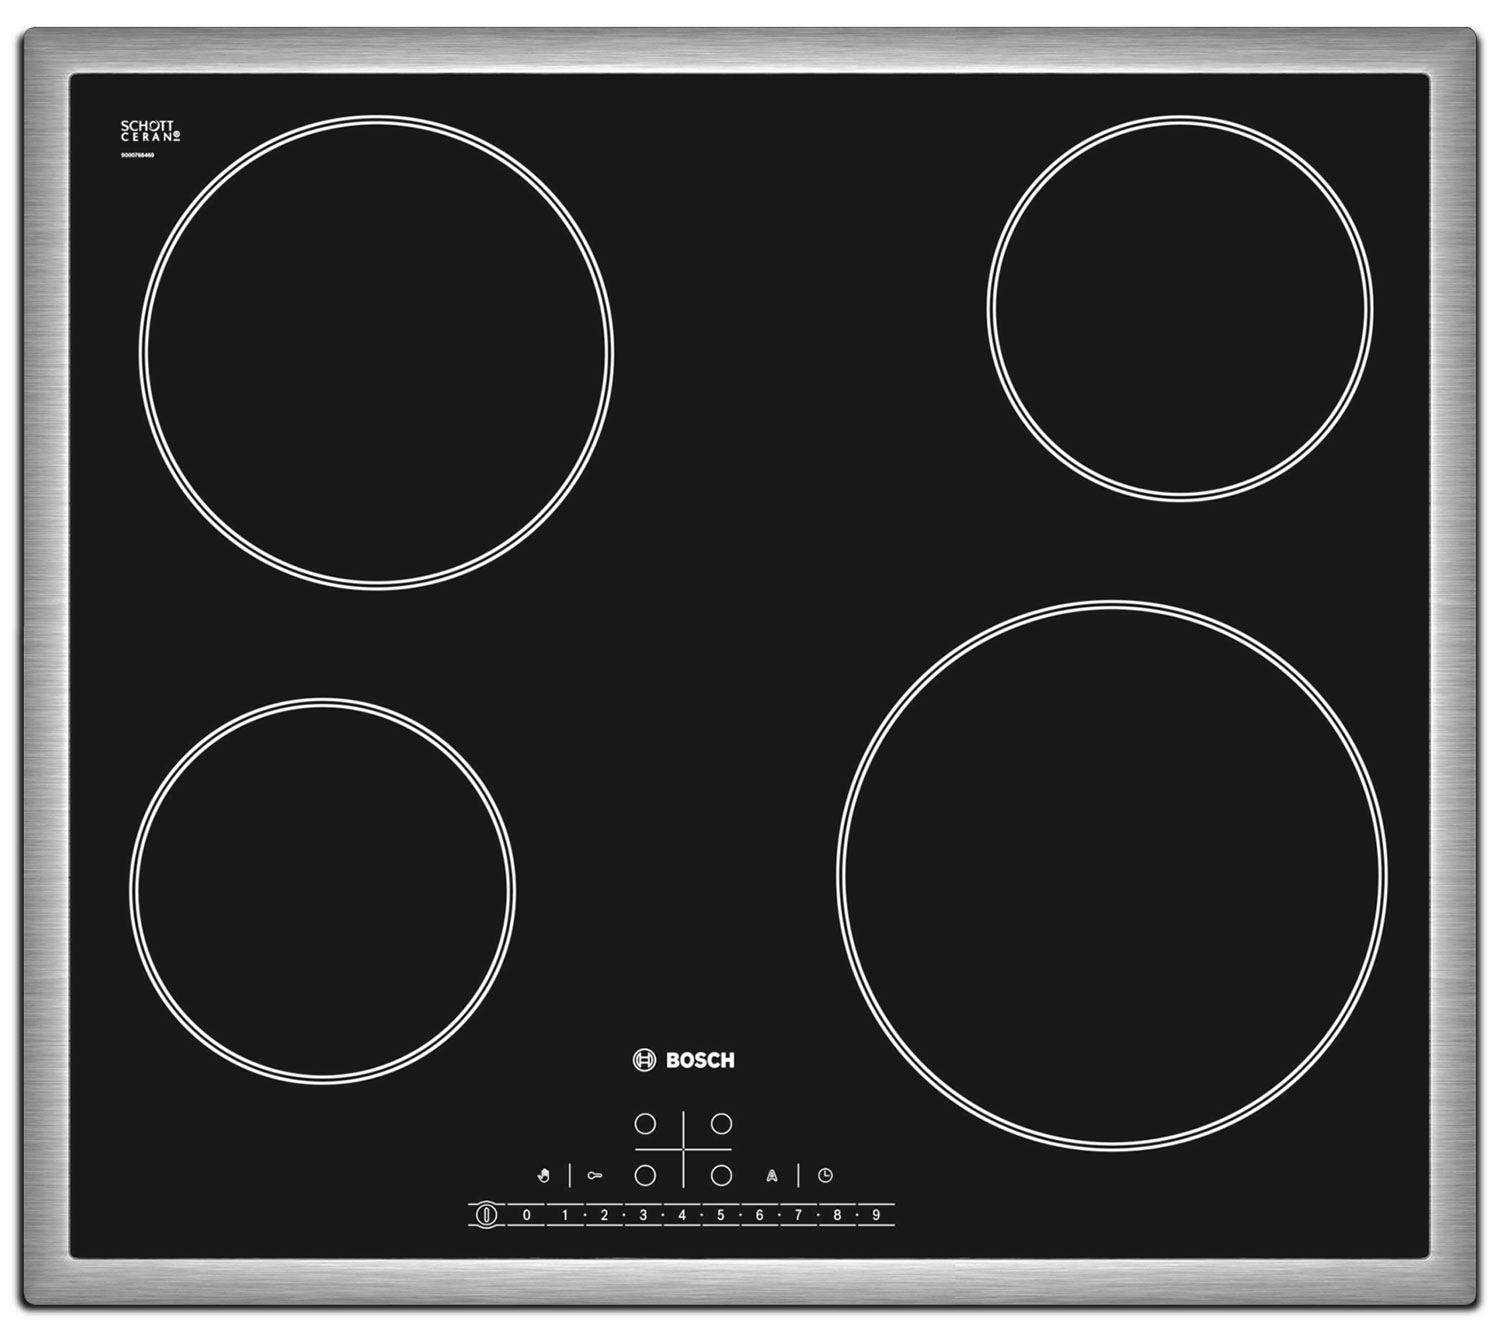 Cooking Products - Bosch Black Electric Cooktop - NET5466SC